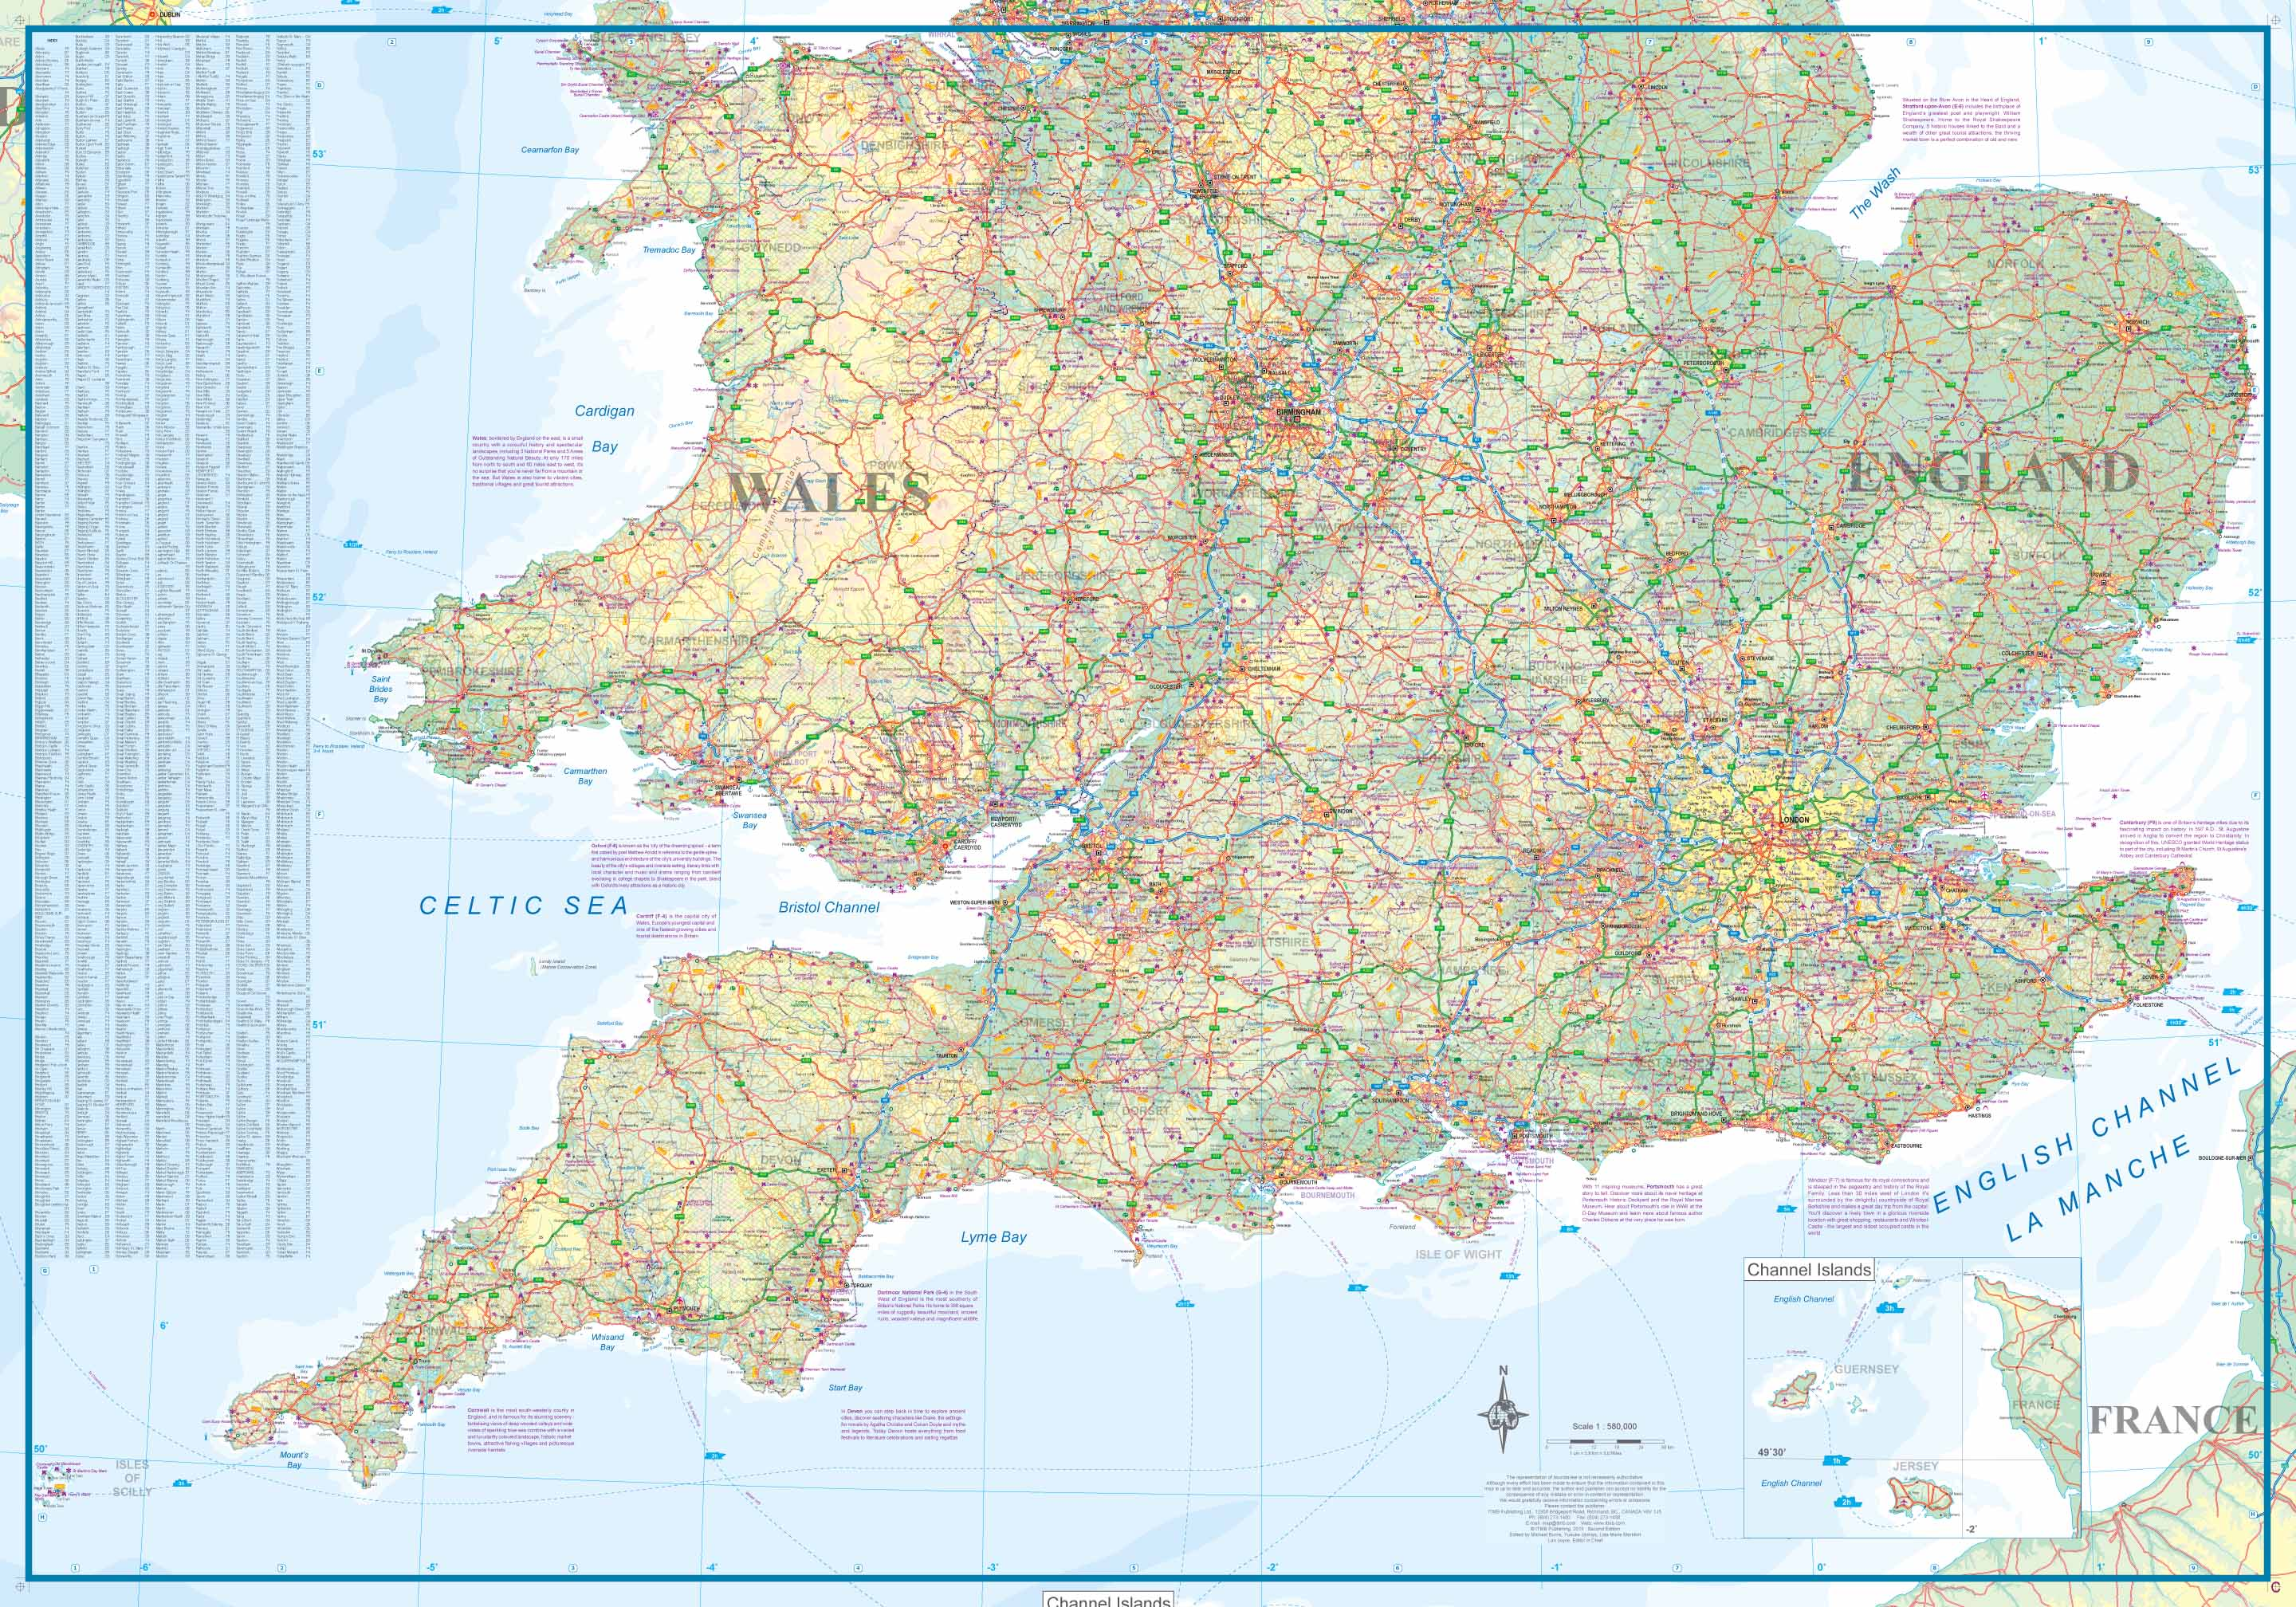 Www Map Of England.Maps For Travel City Maps Road Maps Guides Globes Topographic Maps